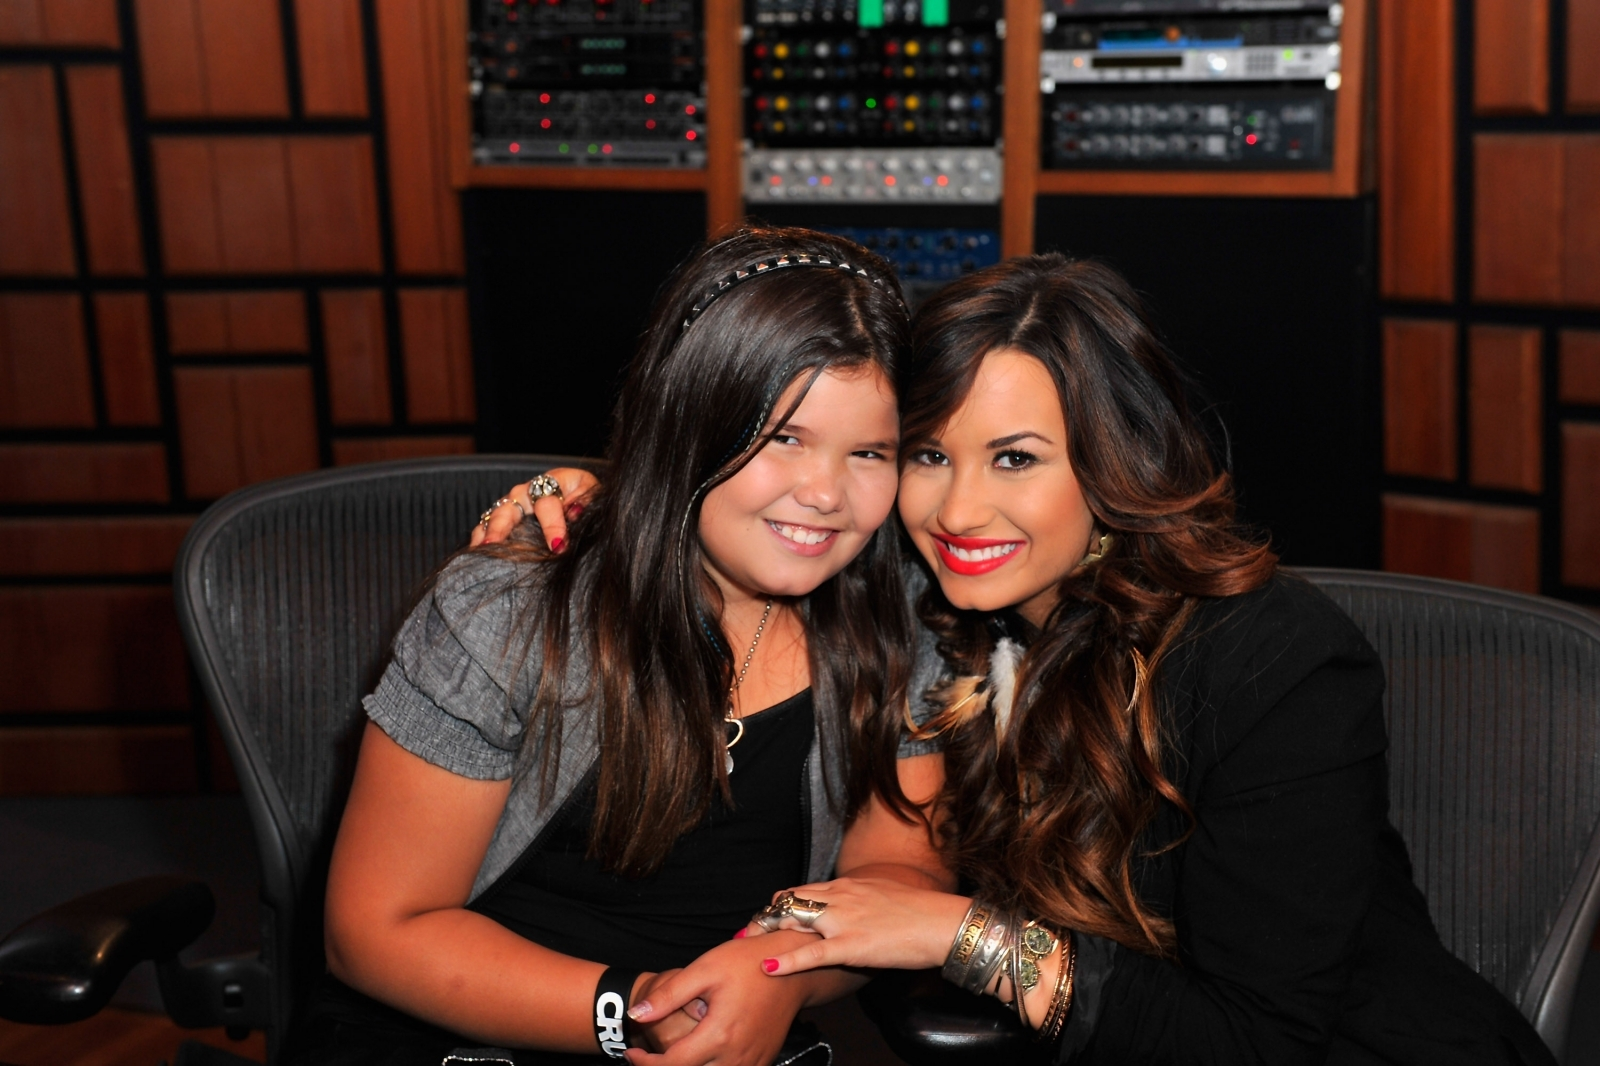 Demi Lovato's Sister Turns 16 & She's Unrecognizable From 'Desperate Housewives' Days